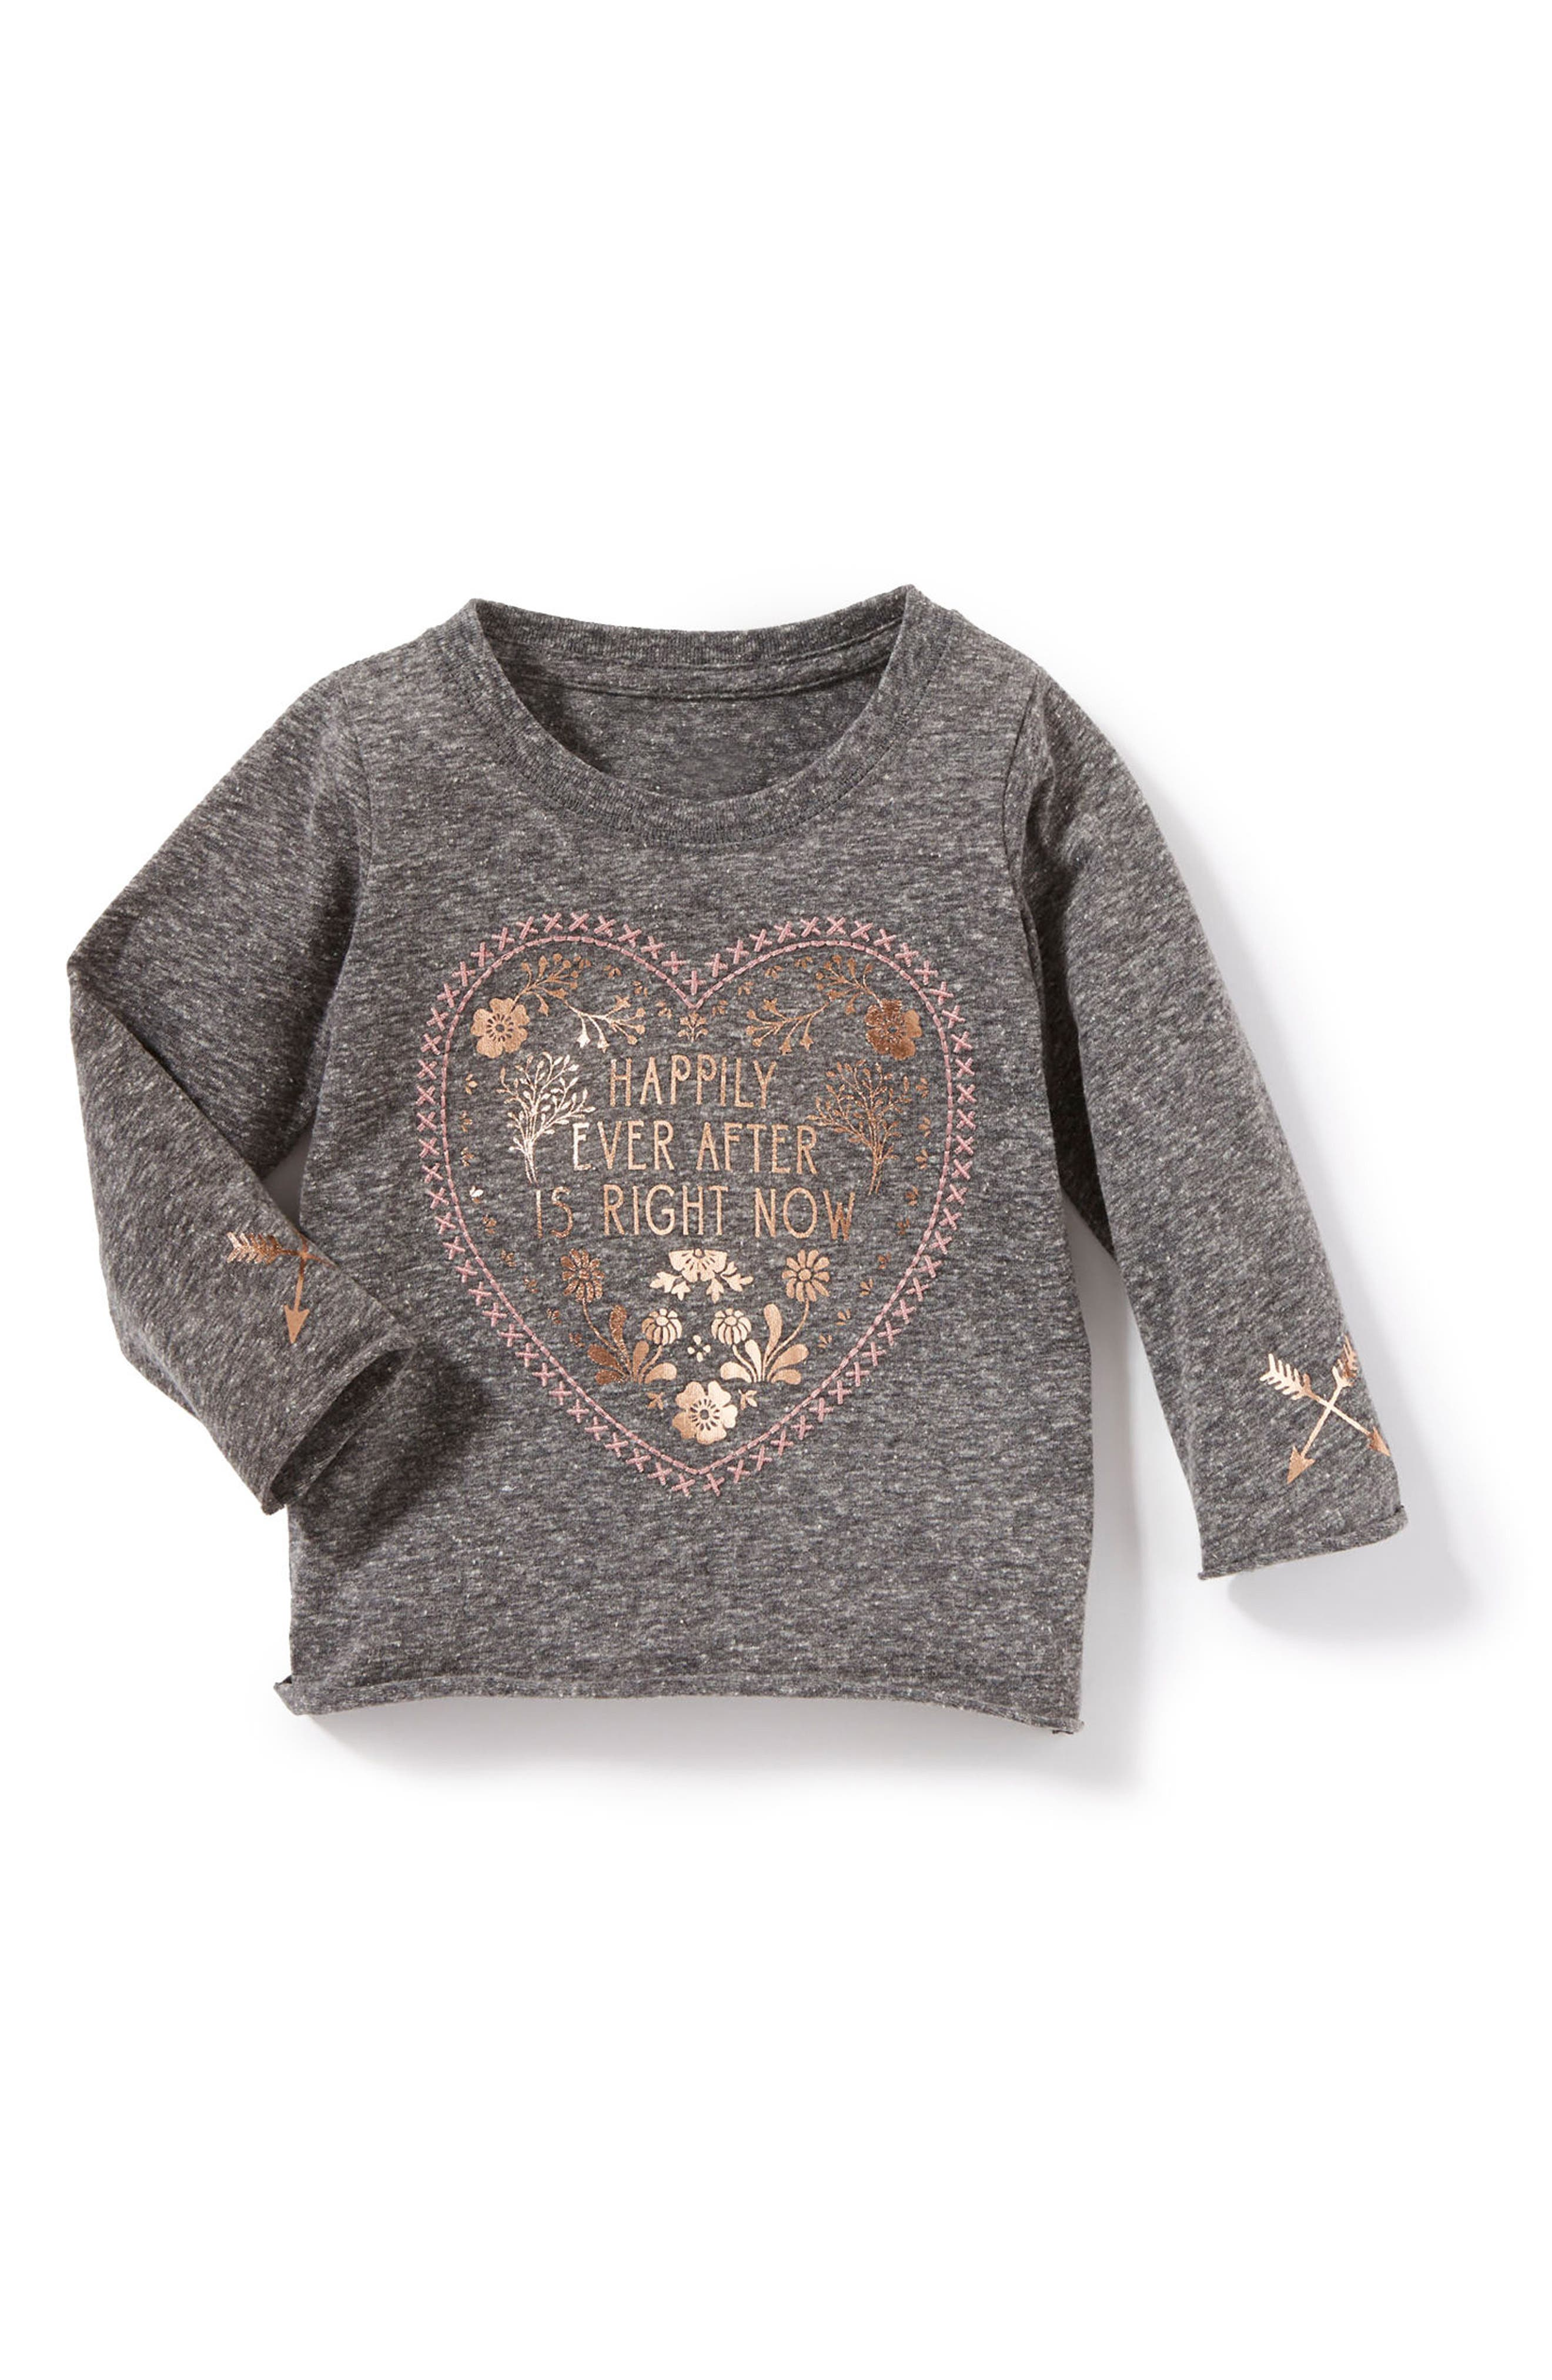 Happily Ever After Graphic Tee,                         Main,                         color, Heather Grey